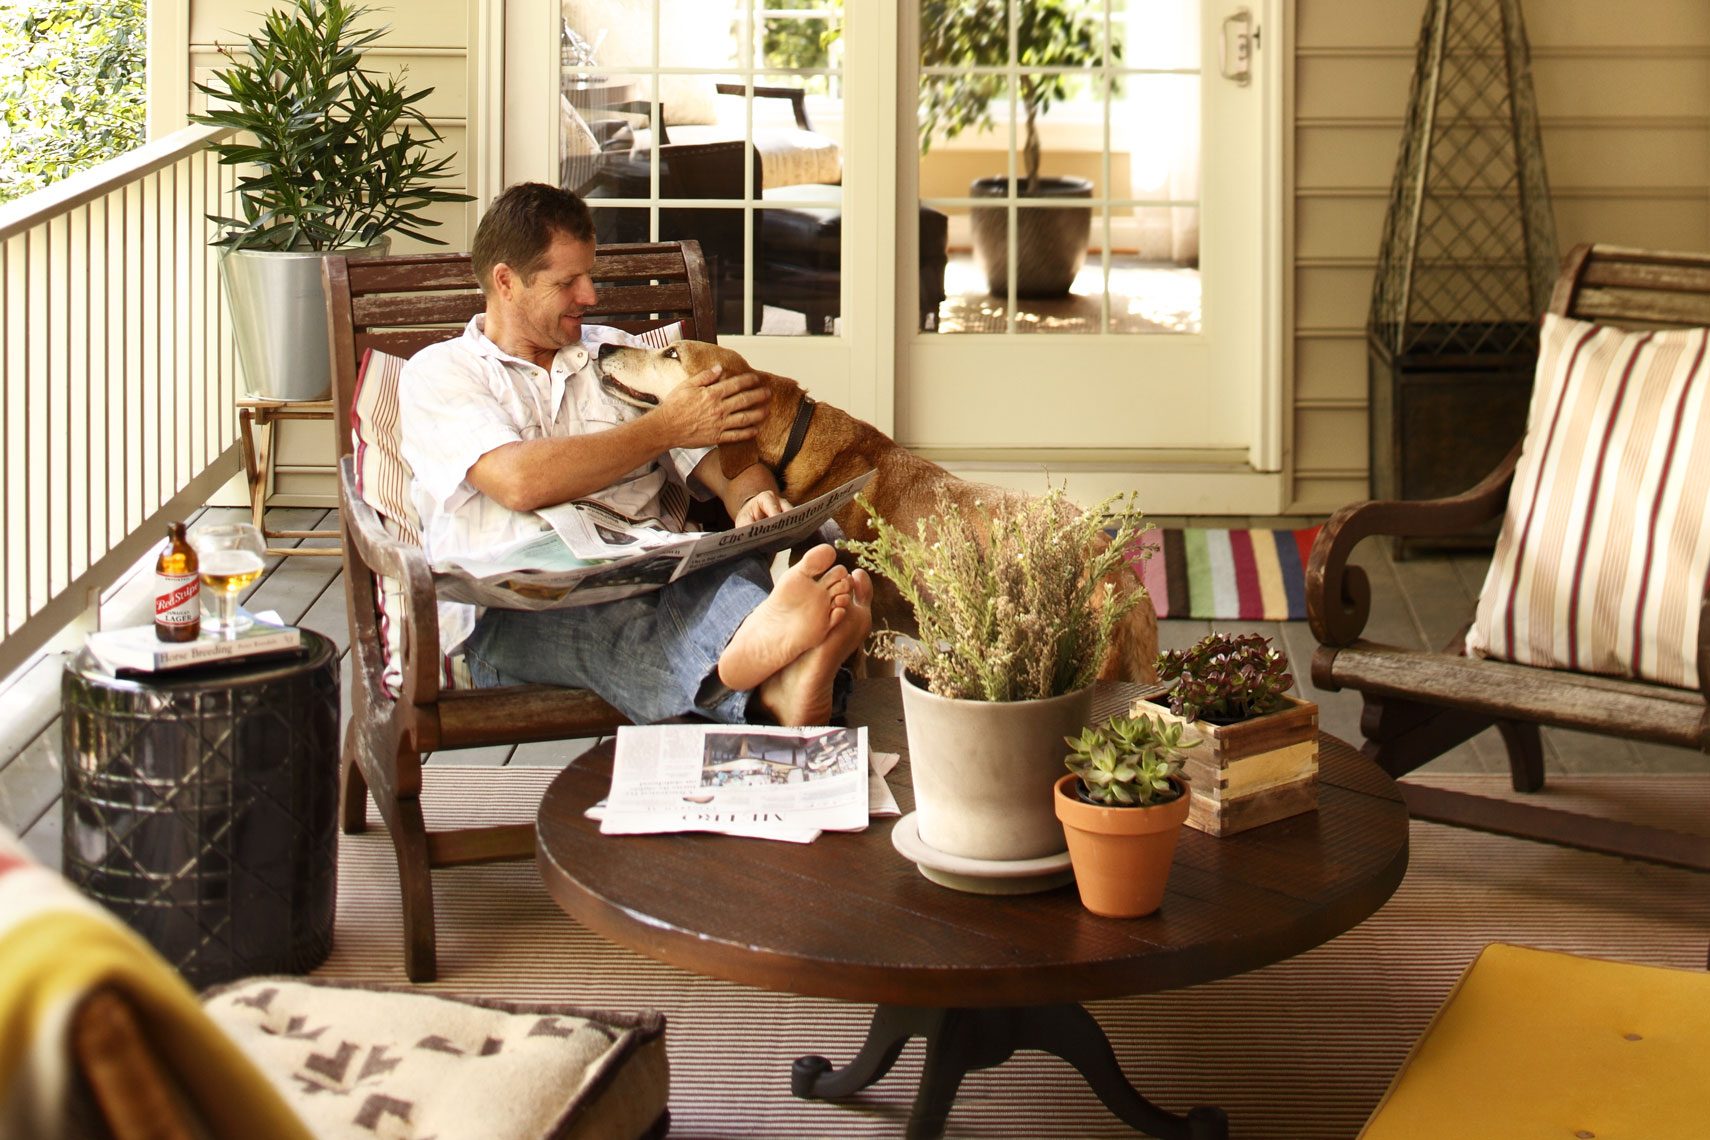 Lifestyle Architecture With Man And Dog On Patio For Home Builder